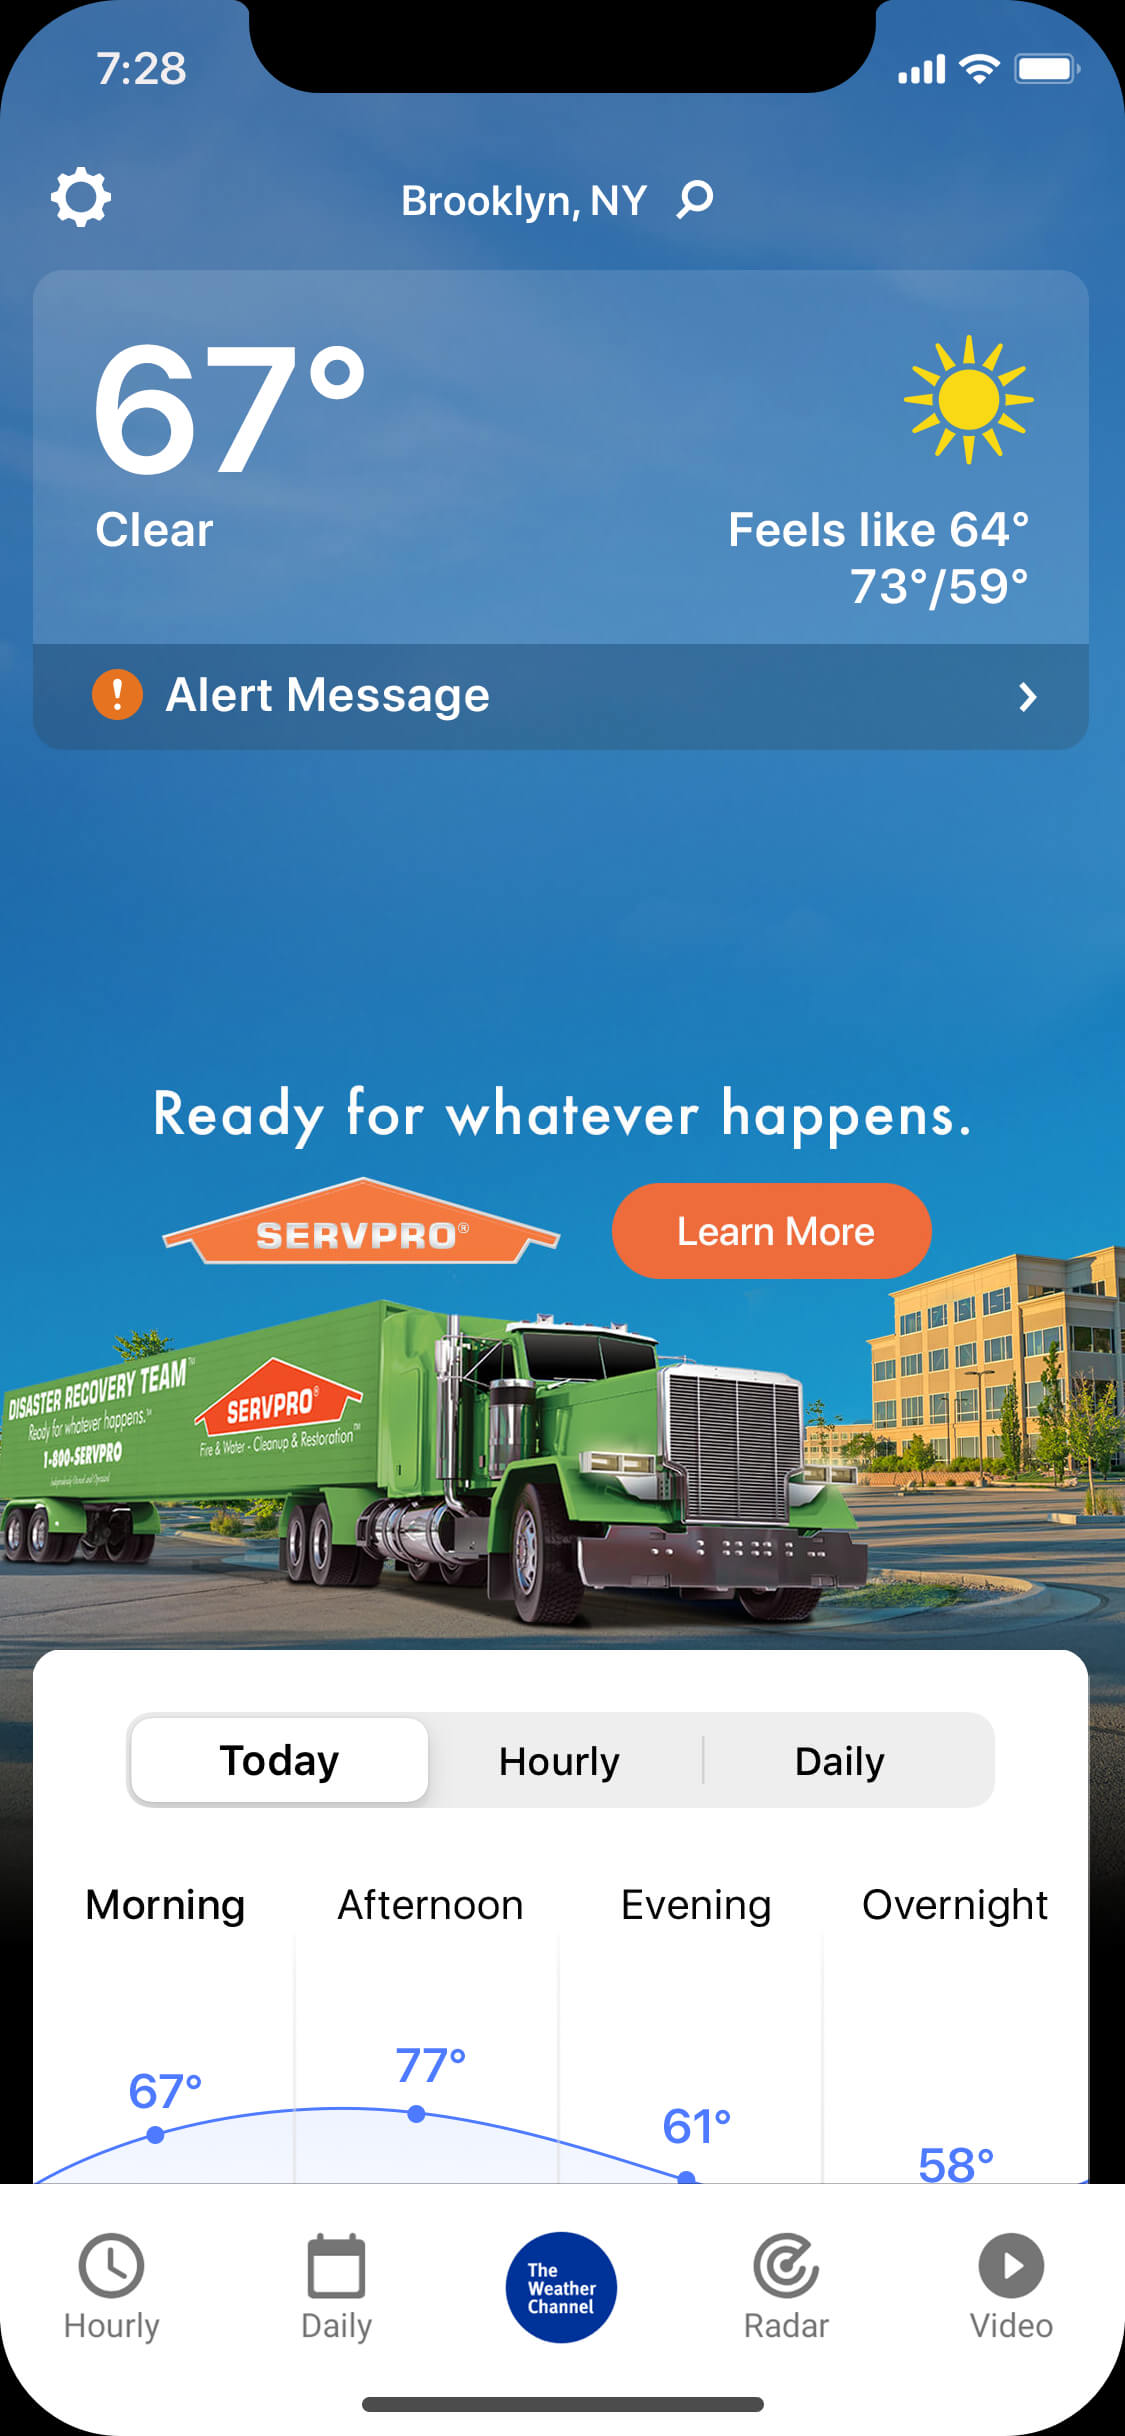 Servpro_MA_IM_Business_clear_day